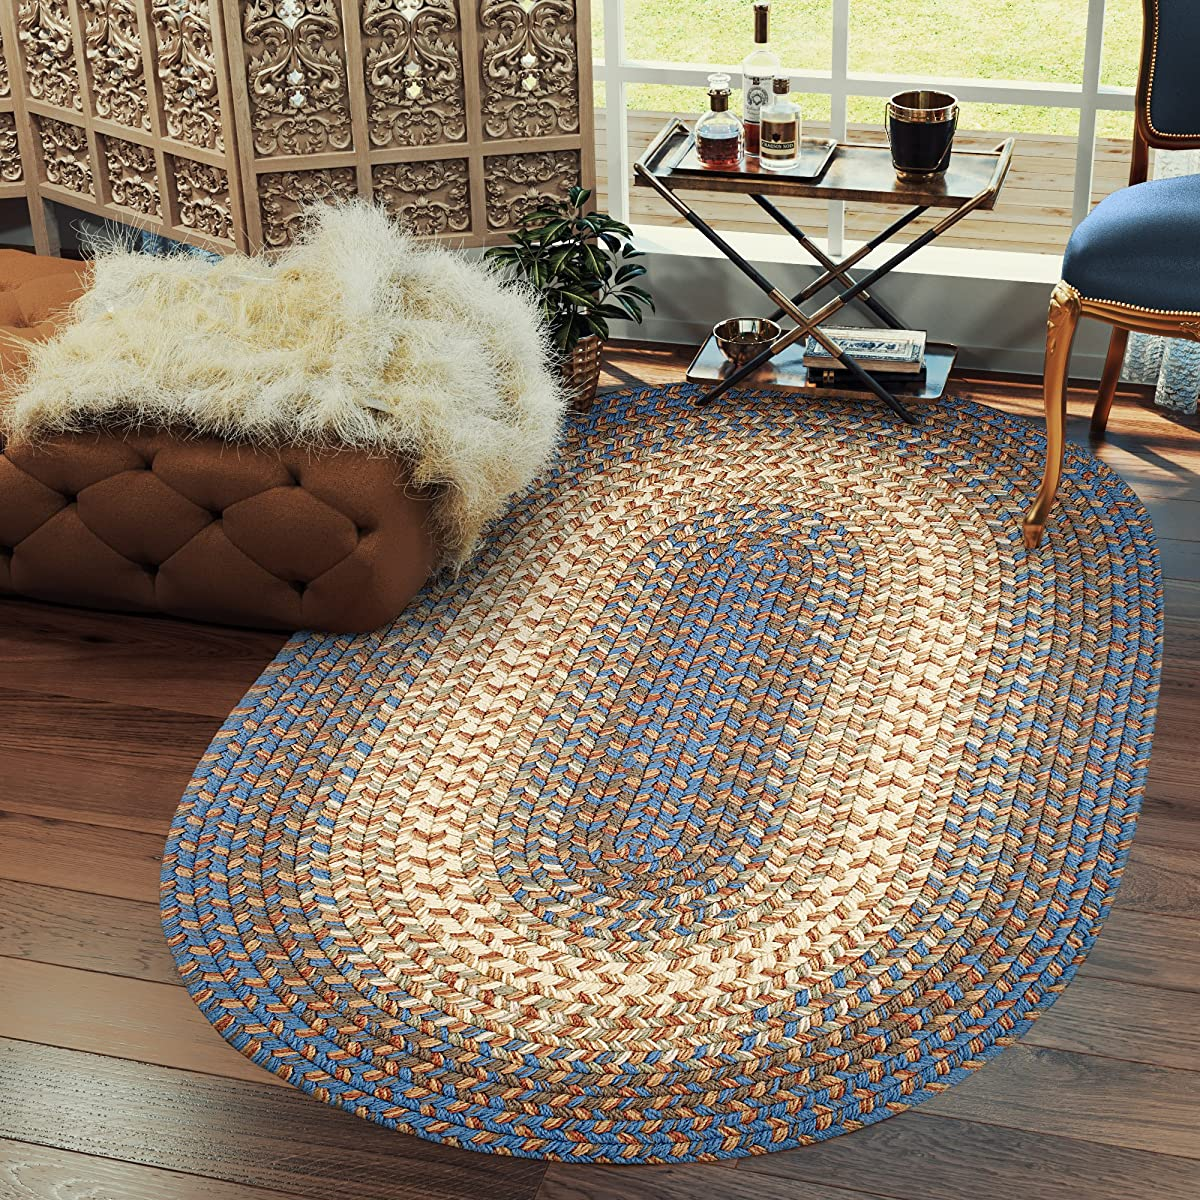 Super Area Rugs Hartford Braided Indoor Outdoor Rug Textured